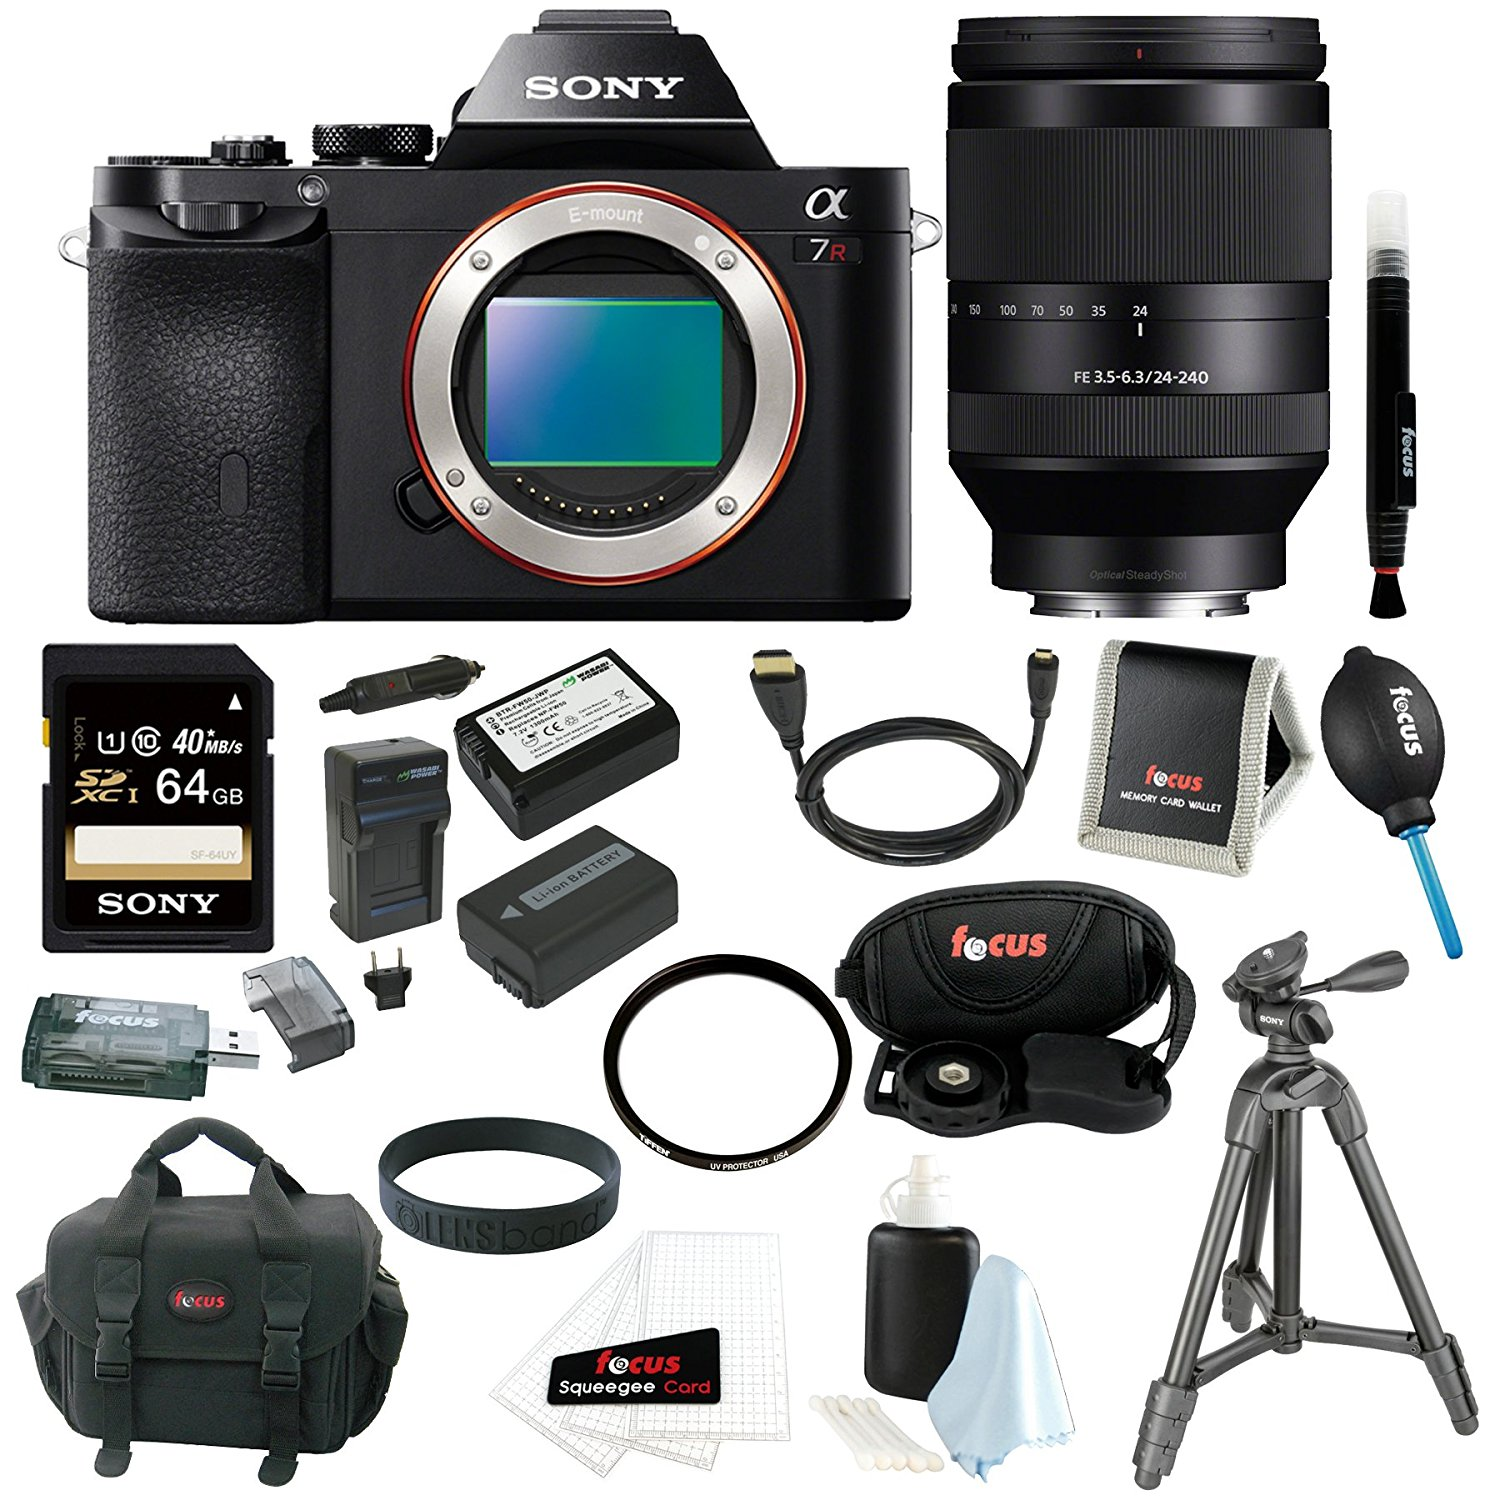 Sony 36.3 MP a7R ILCE7R/B ILCE7RB ILCE7R Full-Frame Interchangeable Digital Lens Camera (Body Only) with Sony FE 24-240mm F3.5-6.3 OSS Full-Frame Lens + Sony 64GB SDXC Memory Card + 2 Wasabi Power FW50 Batteries and Charger + Sony VCT-R100 Tripod + Deluxe